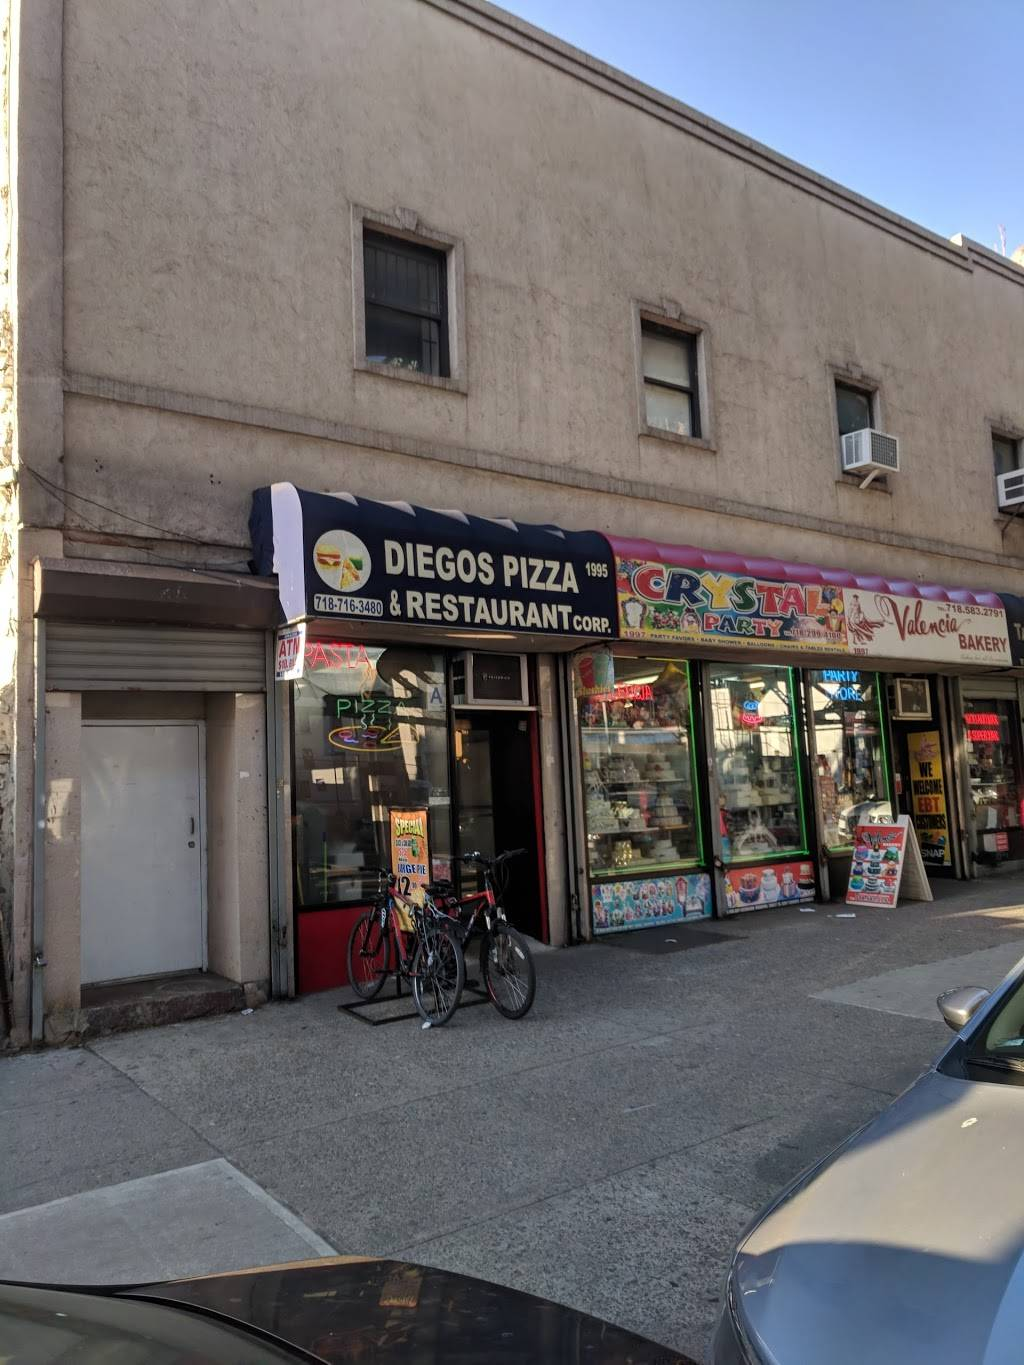 Diegos Pizza | restaurant | 1995 Jerome Ave, Bronx, NY 10453, USA | 7187163480 OR +1 718-716-3480